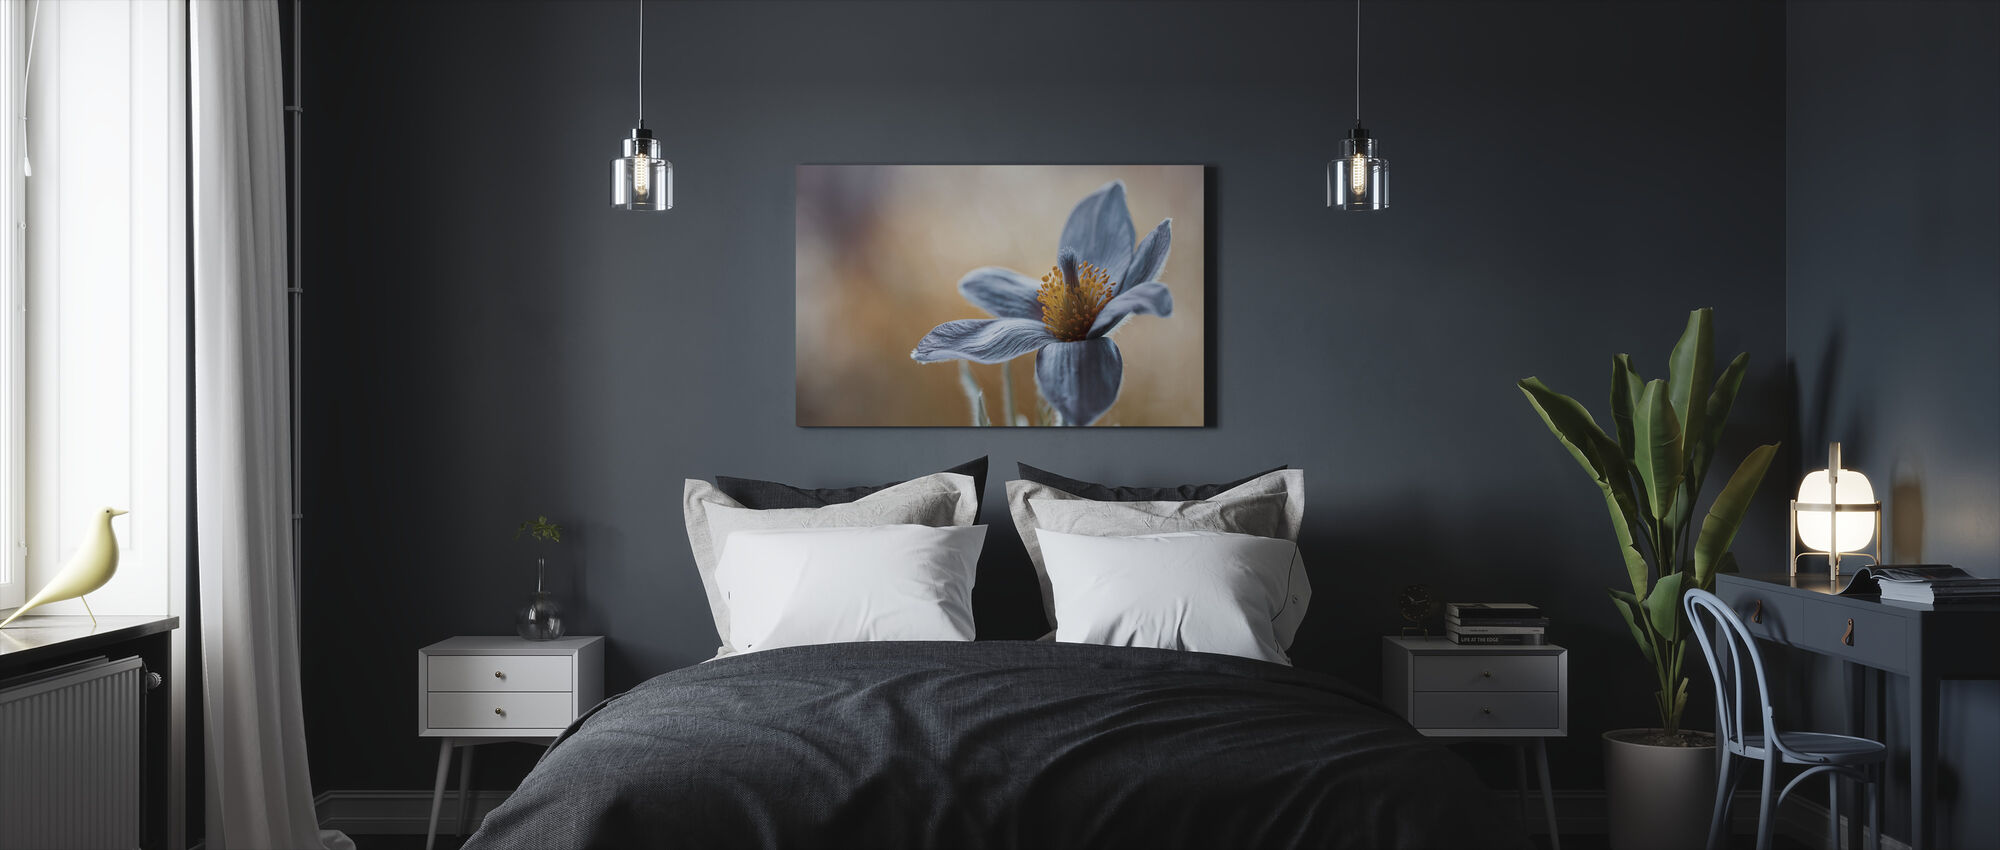 Not just any Flower - Canvas print - Bedroom